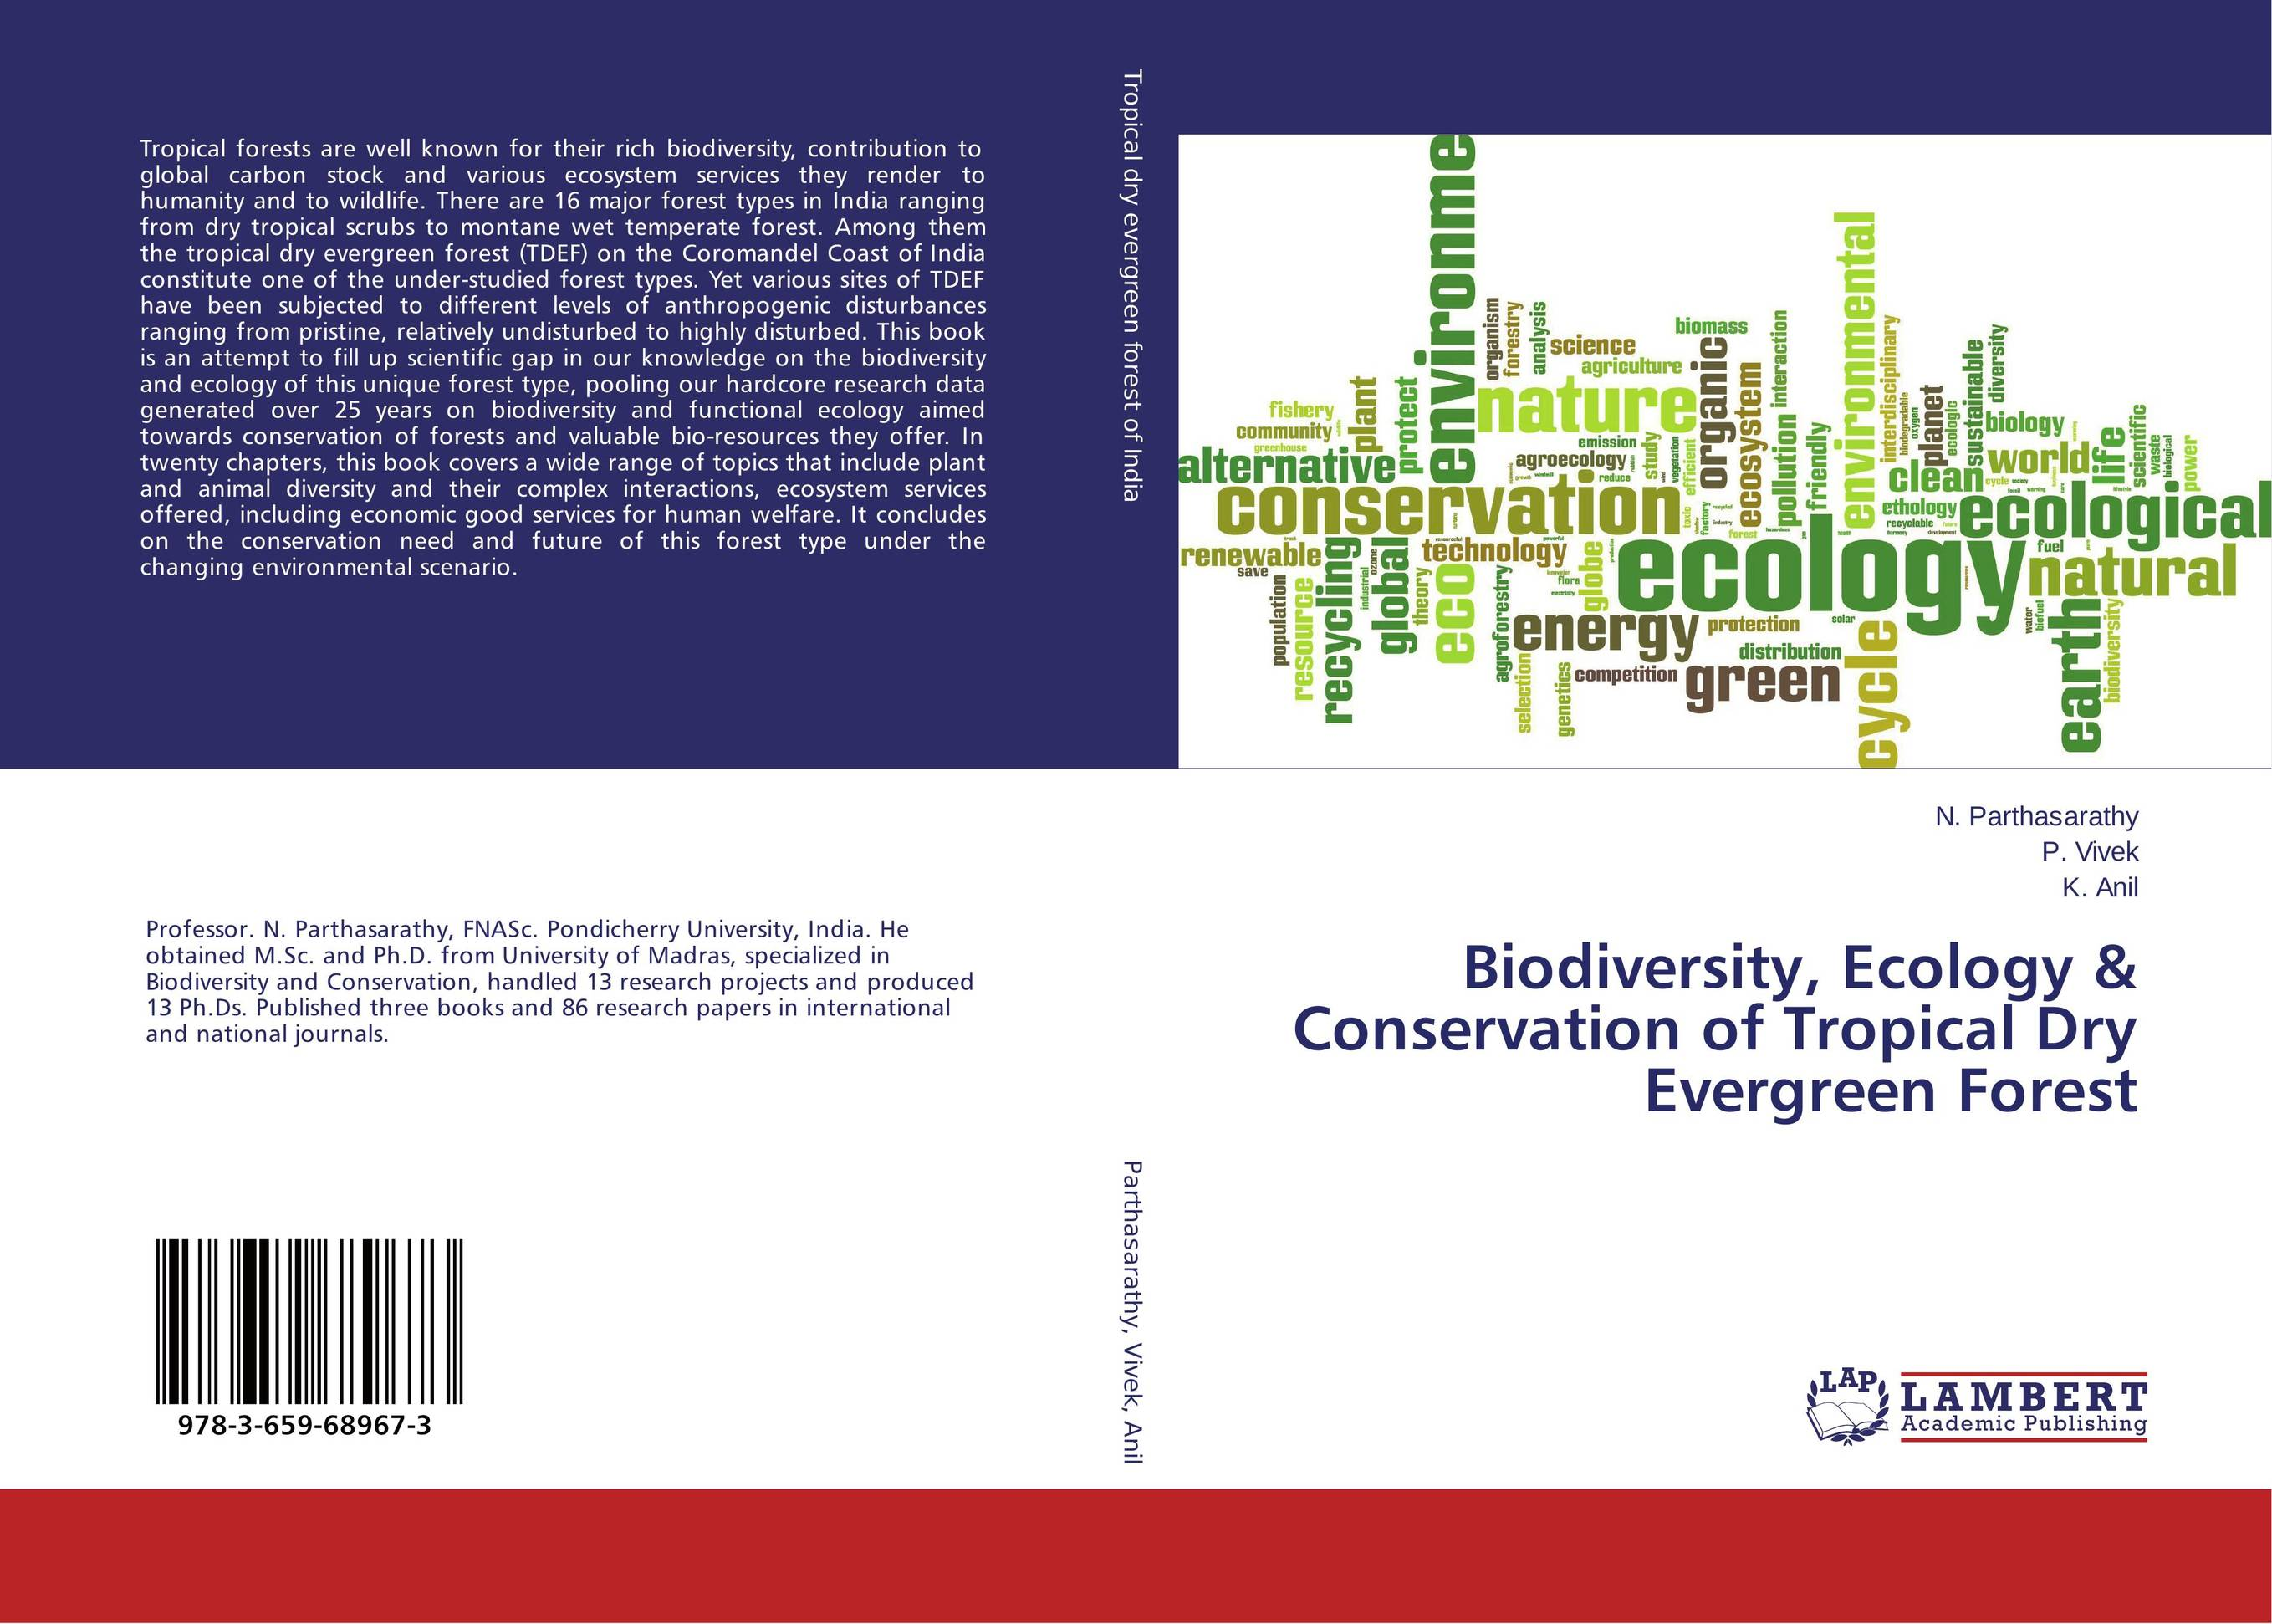 Biodiversity, Ecology & Conservation of Tropical Dry Evergreen Forest ecosystem ecology